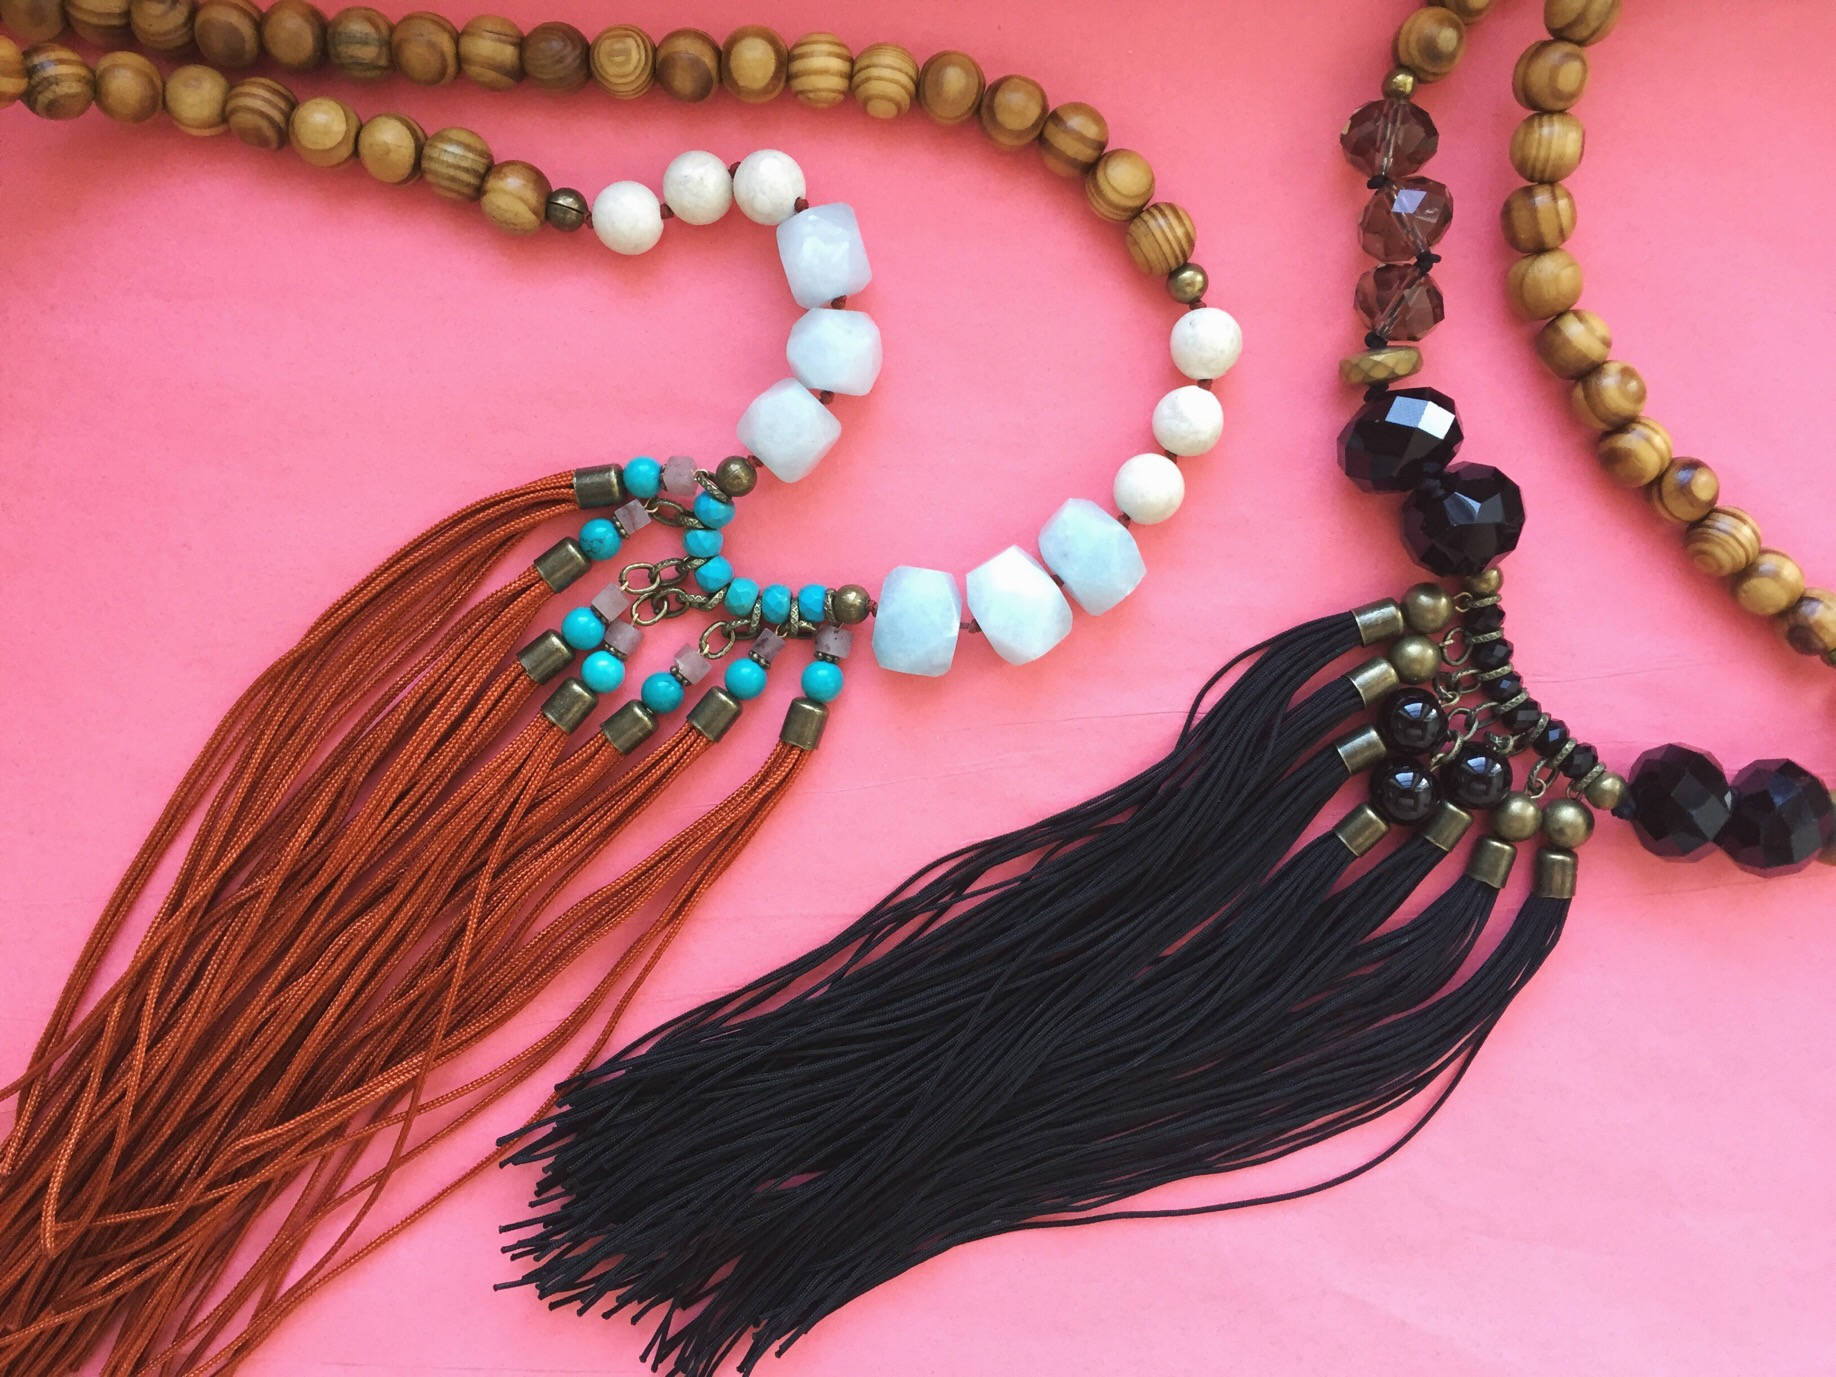 Tassels with wood bead accents for a more natural style.